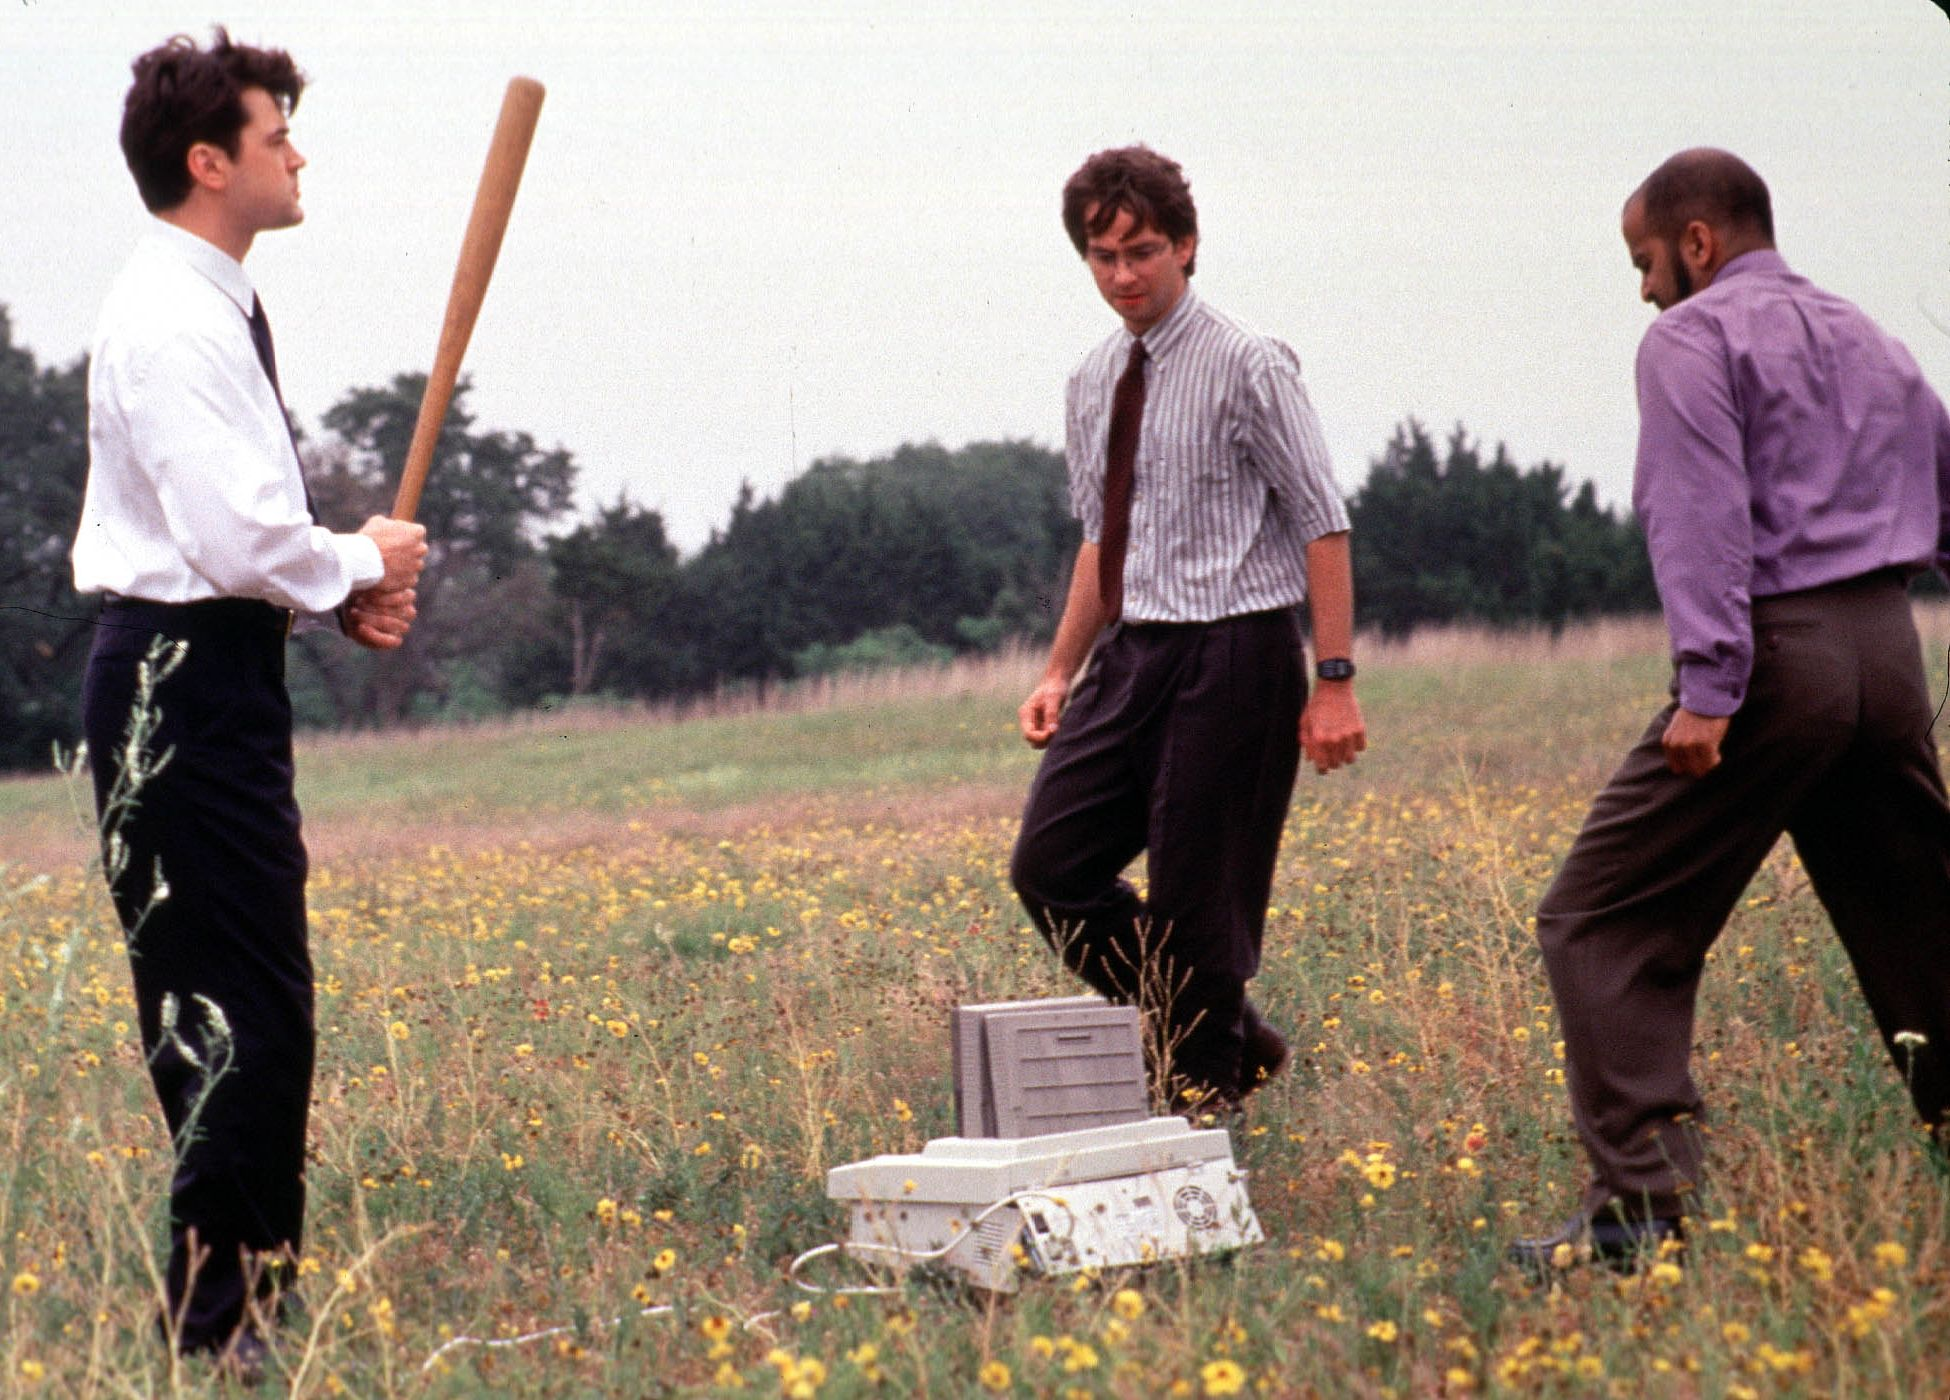 The Best Scenes From Office Space, Which Turns 20 Years Old Today